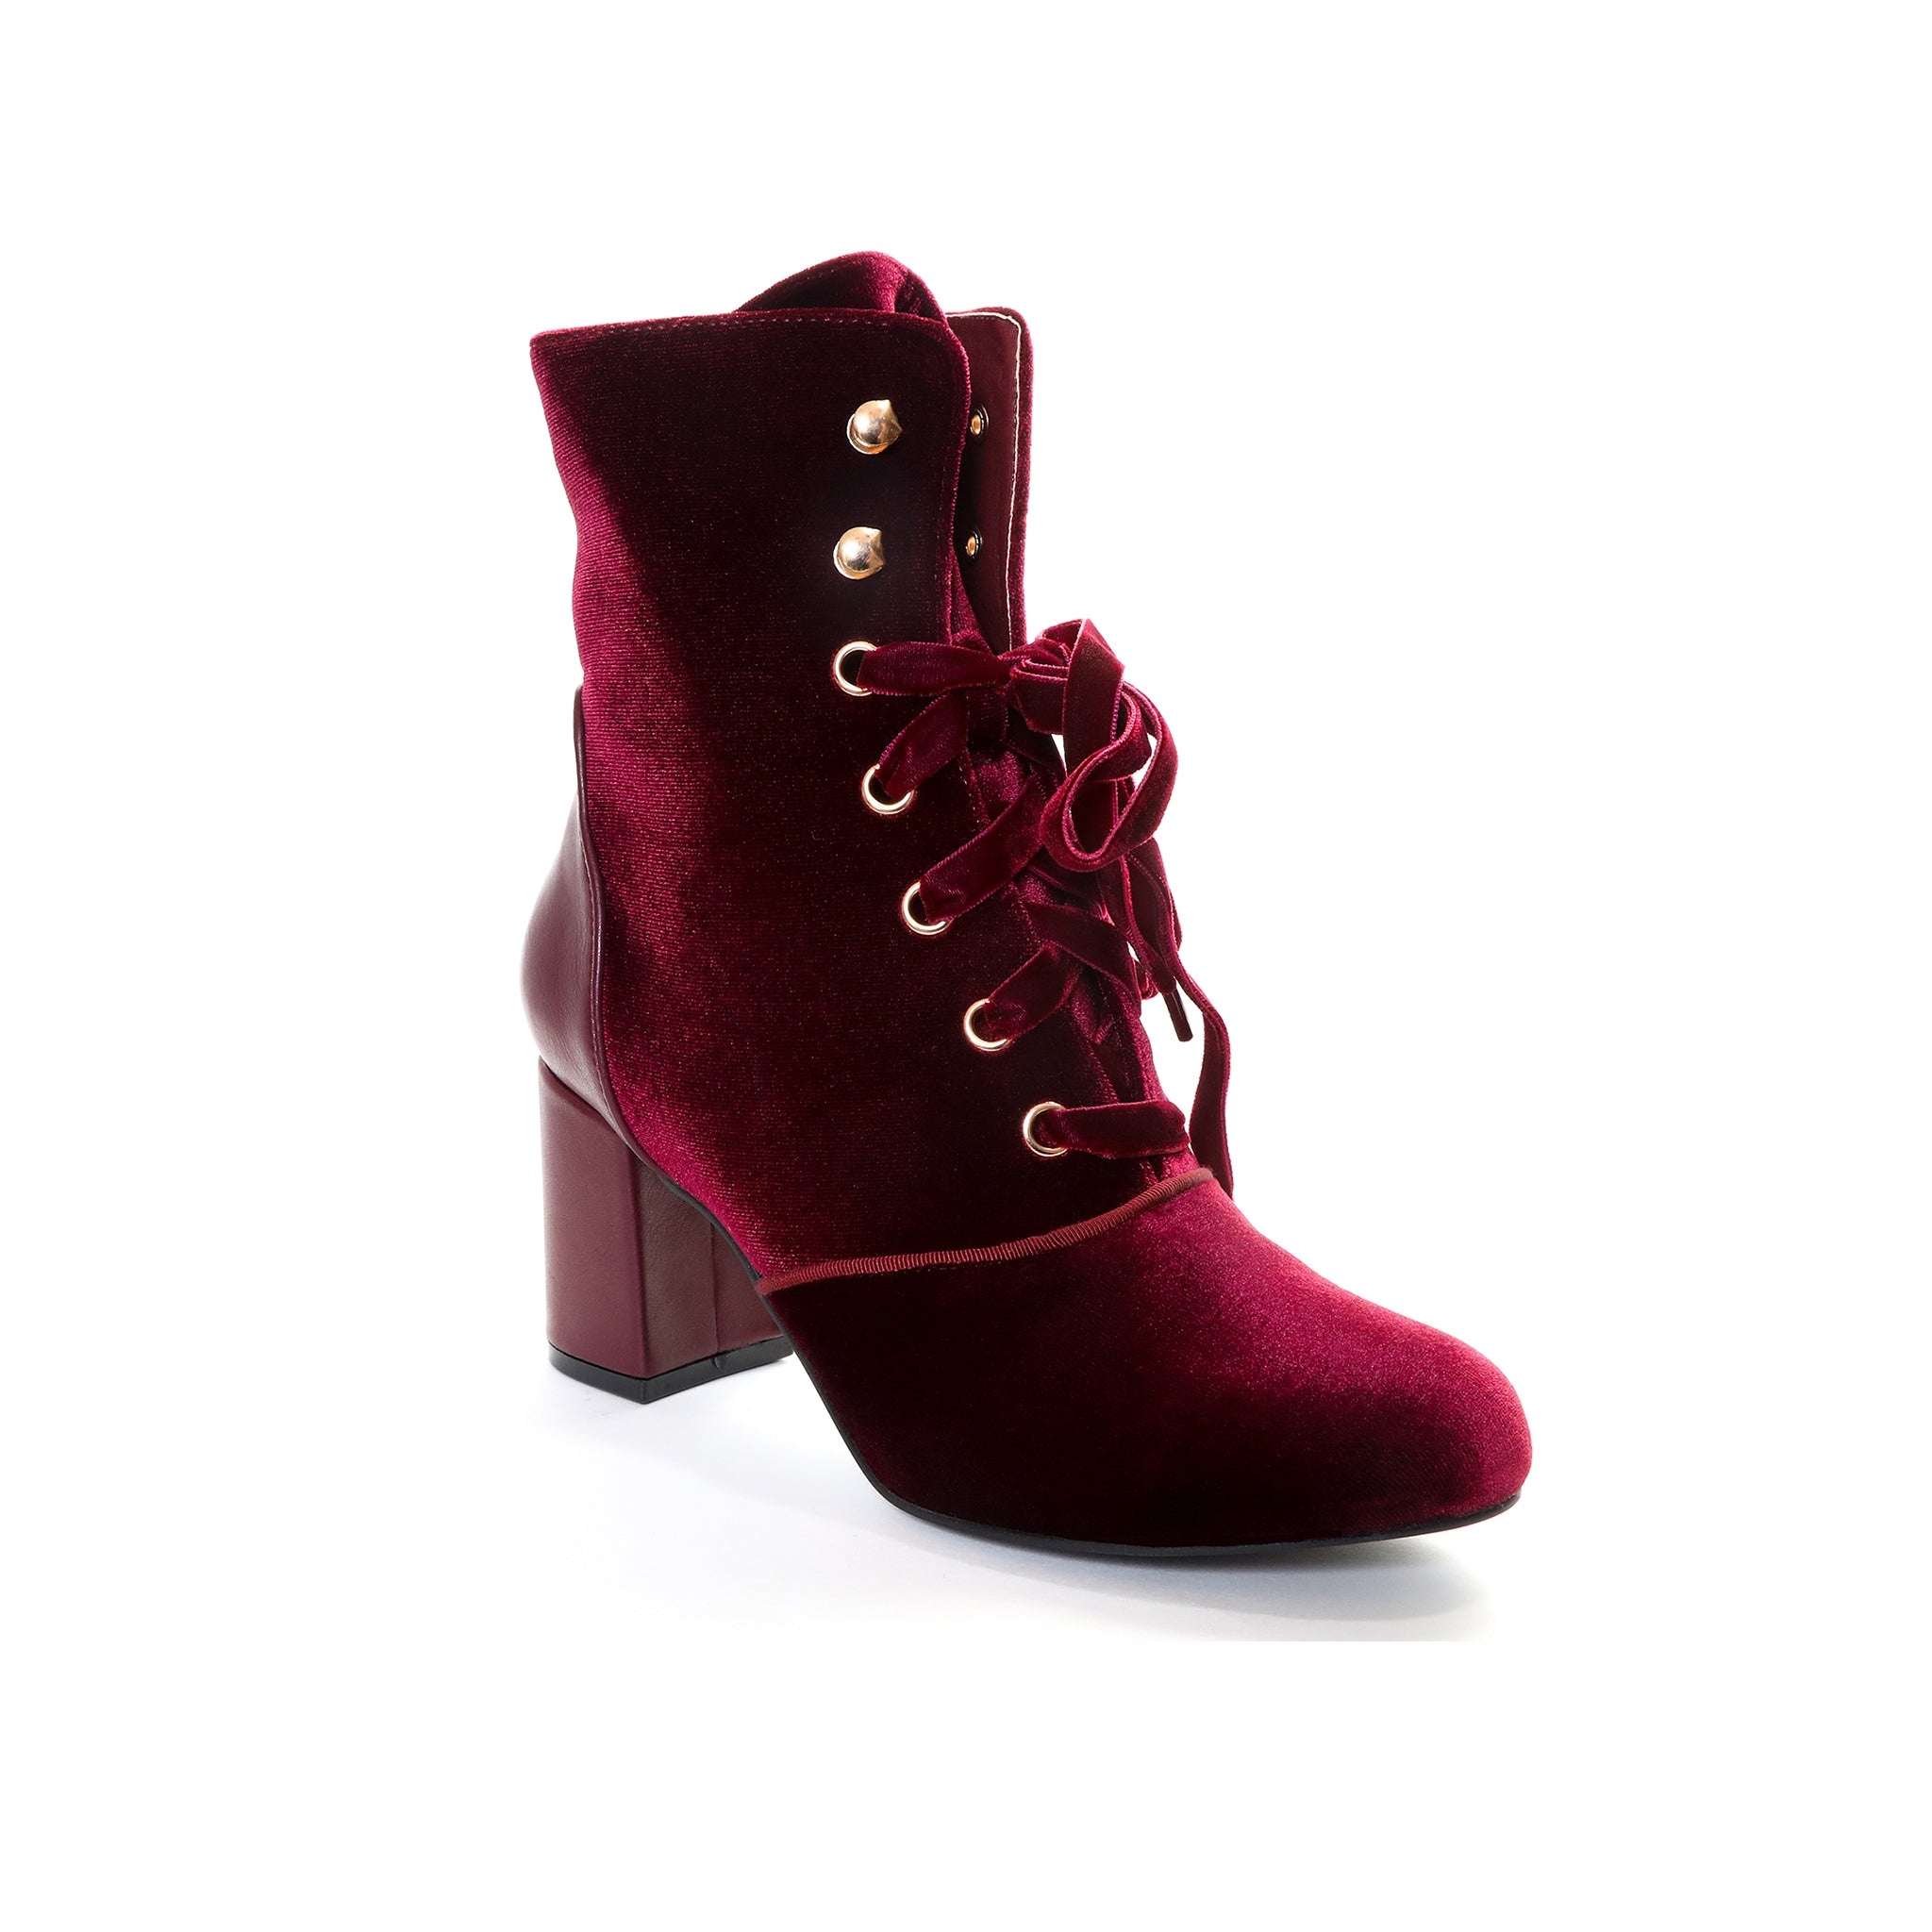 Claudia by Dolce Nome | Lace Up Heel Boots in Wine (main view)